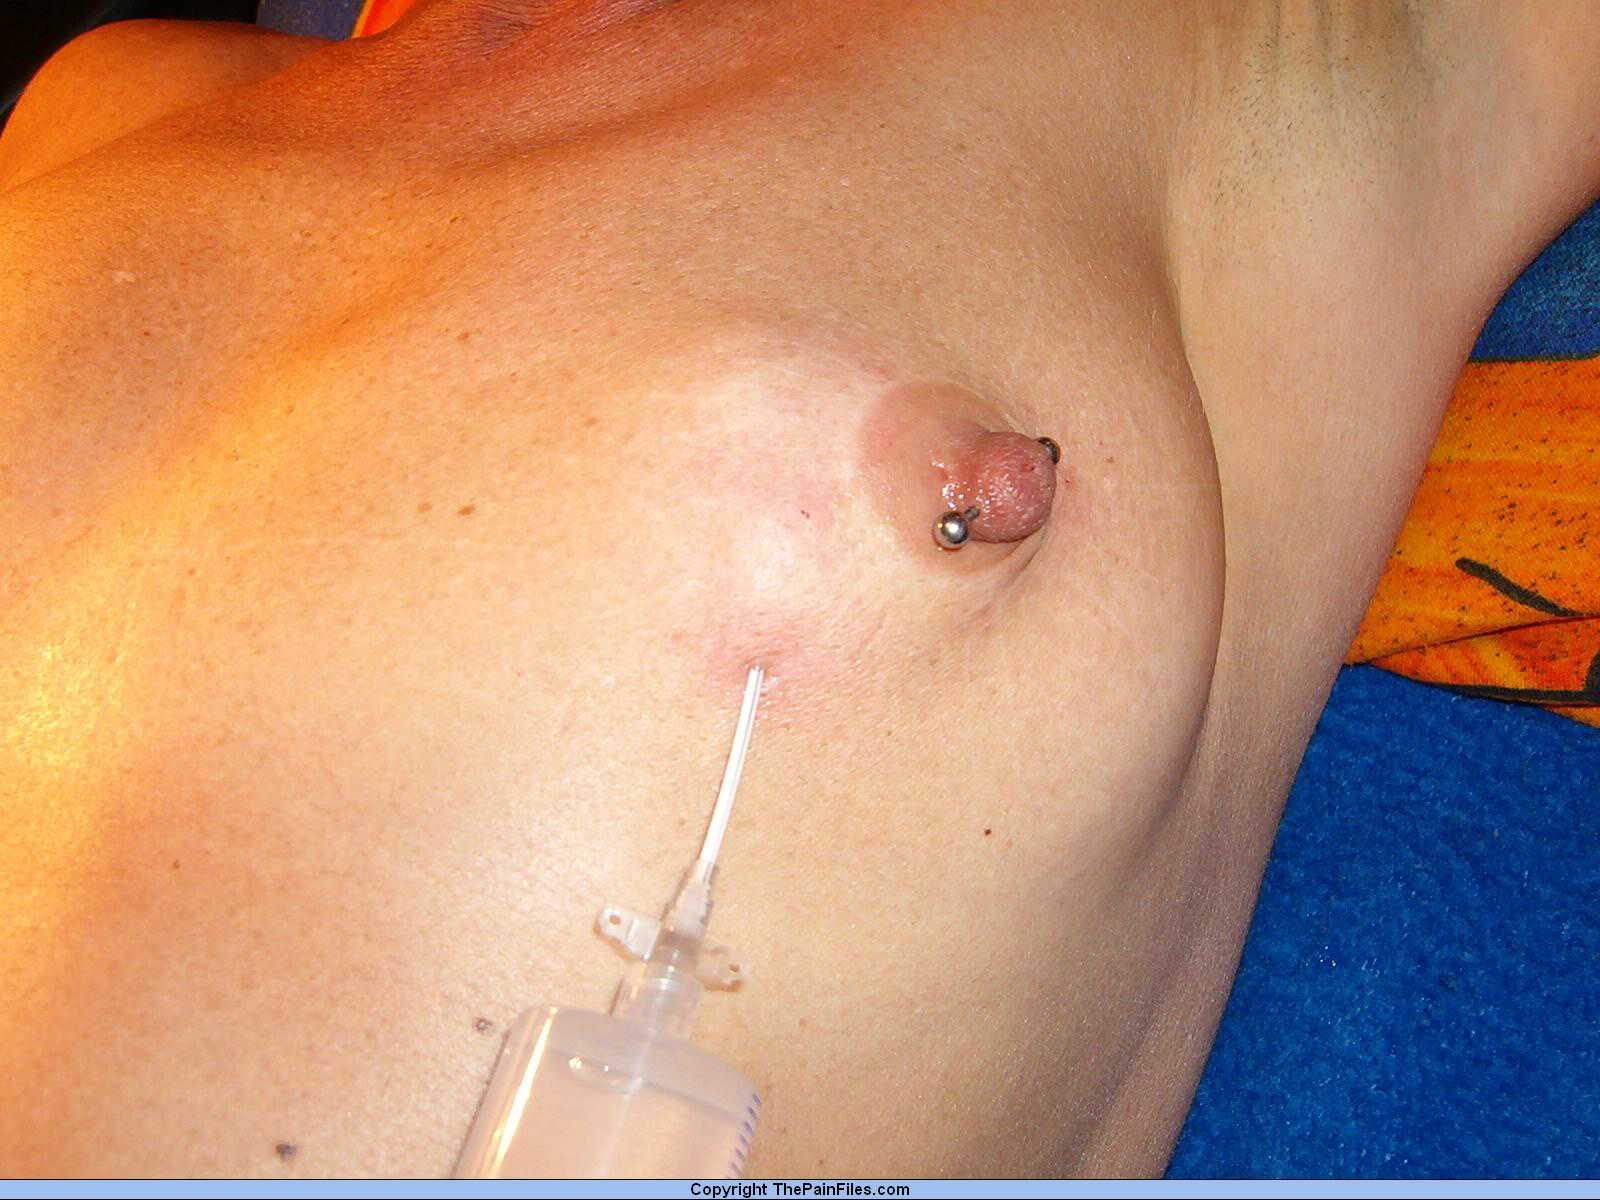 needle nipple injection picture sex